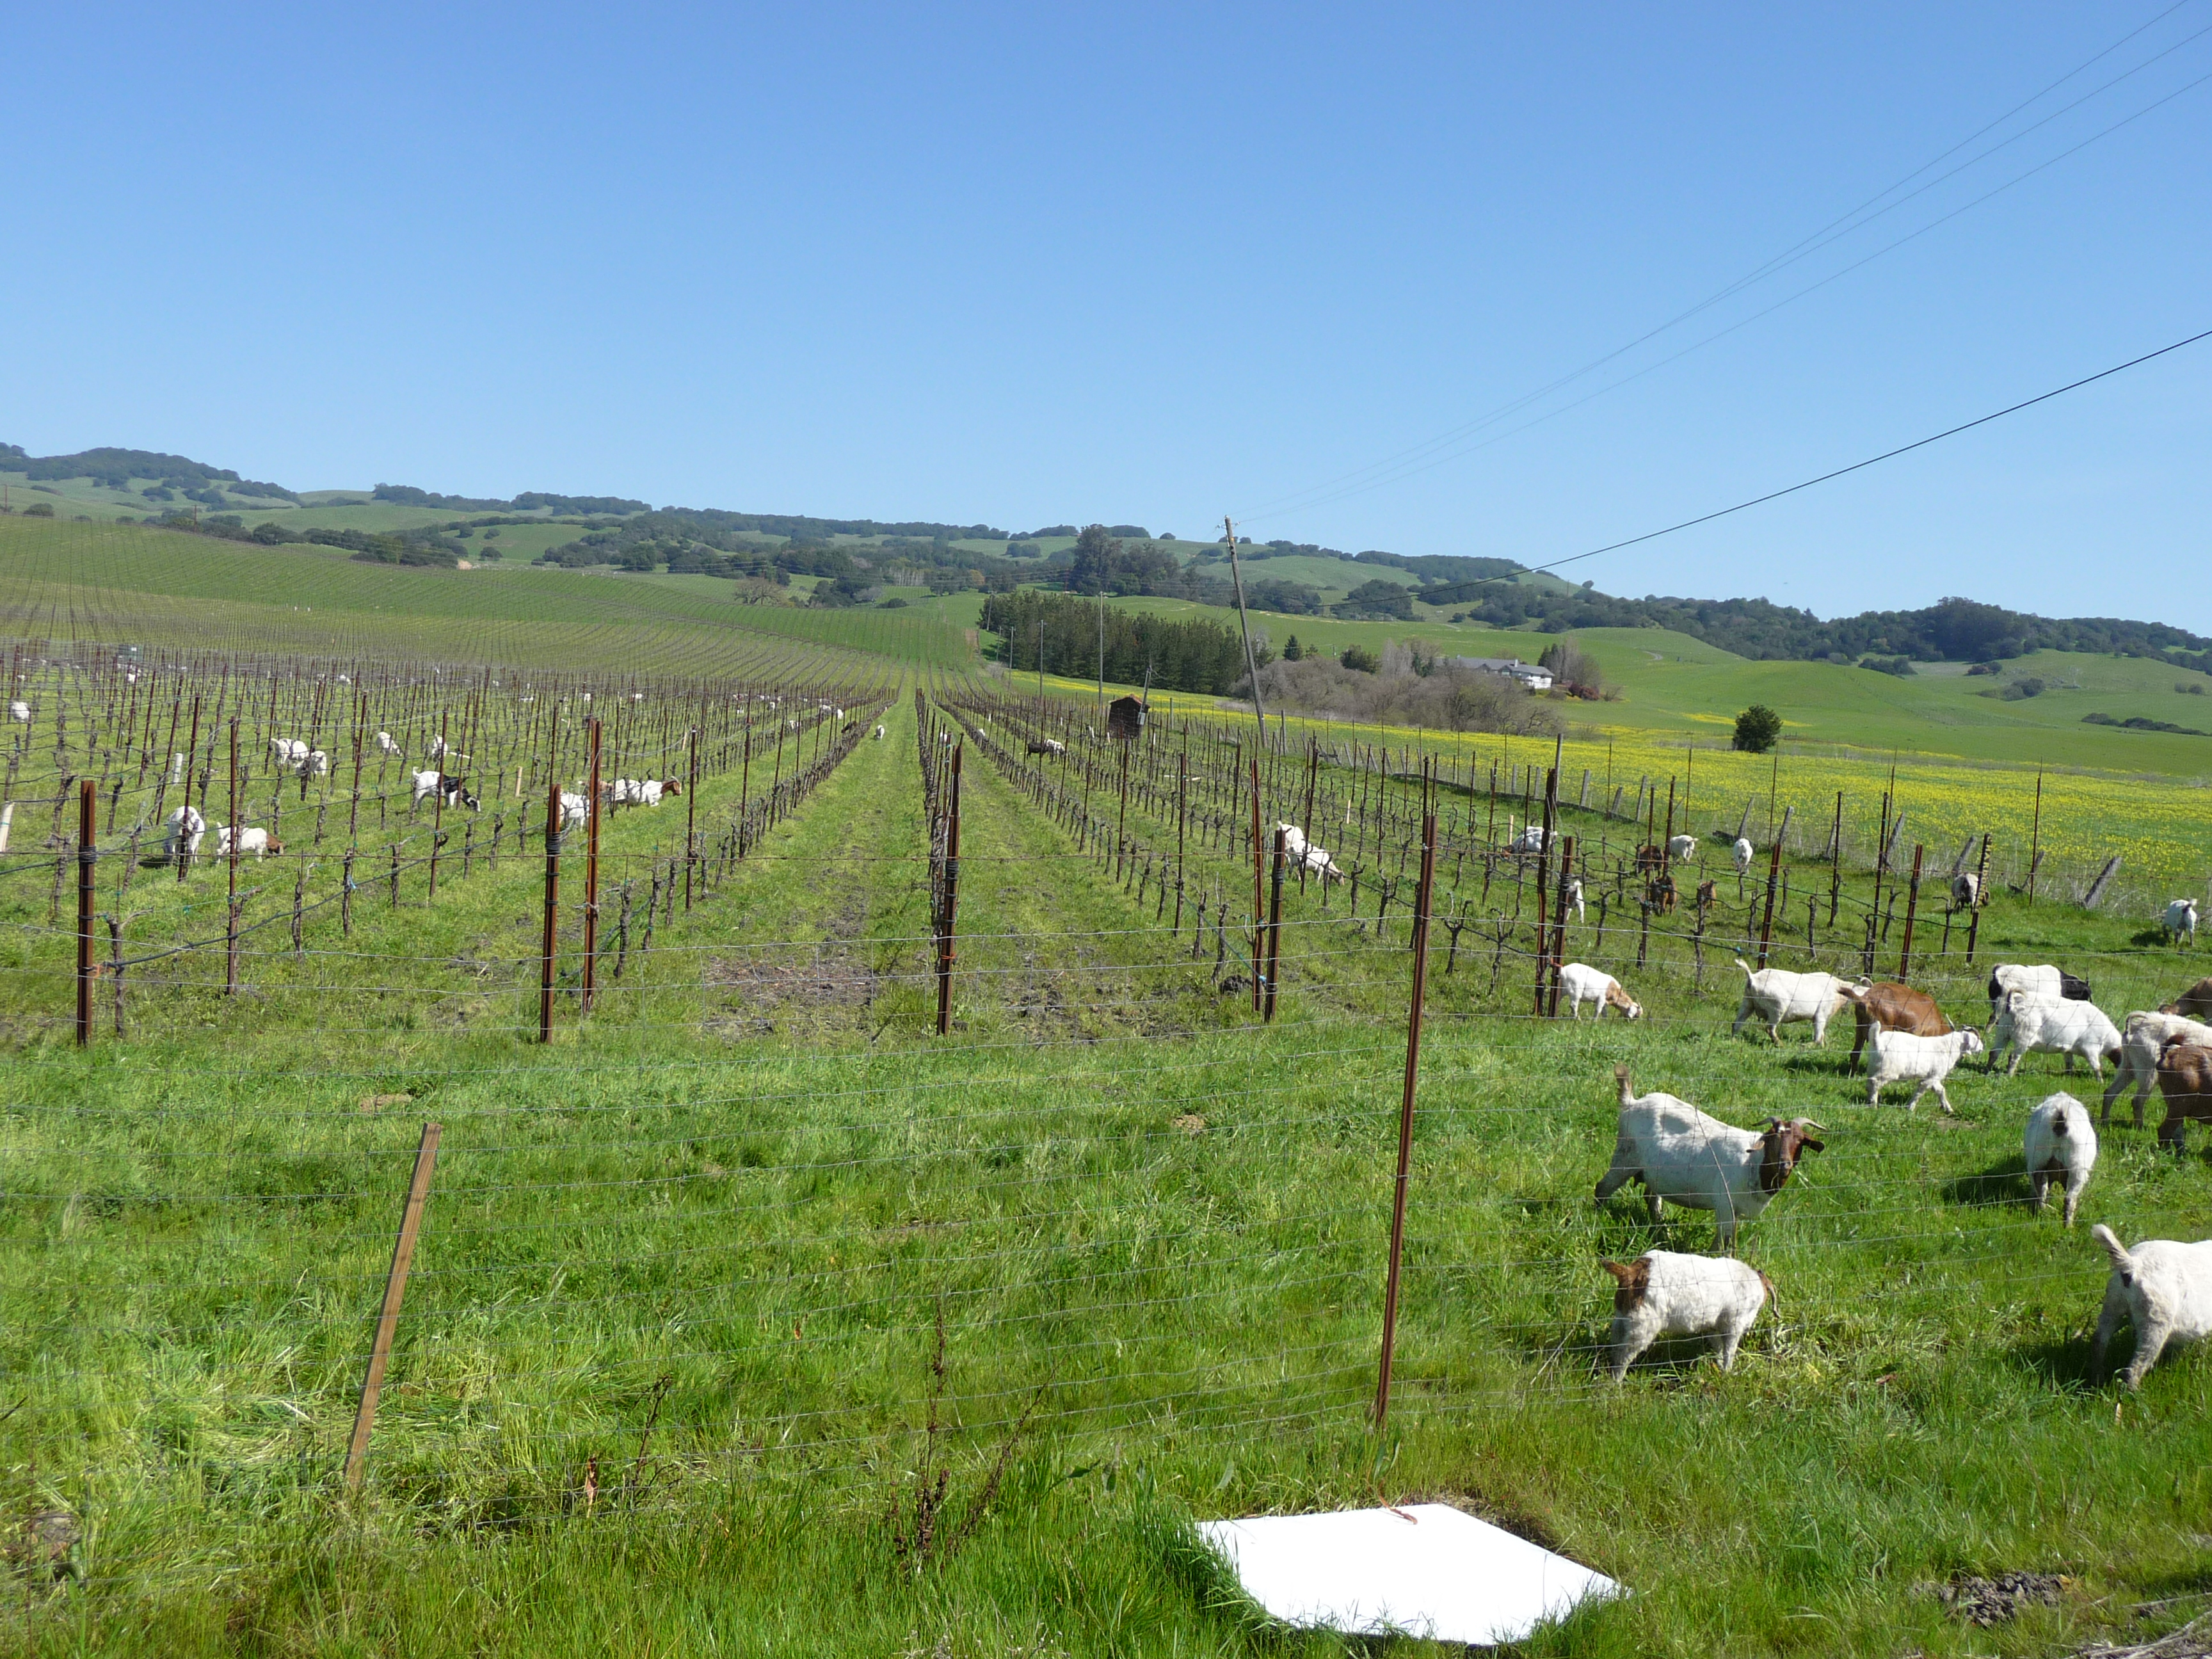 Goat in the vineyards